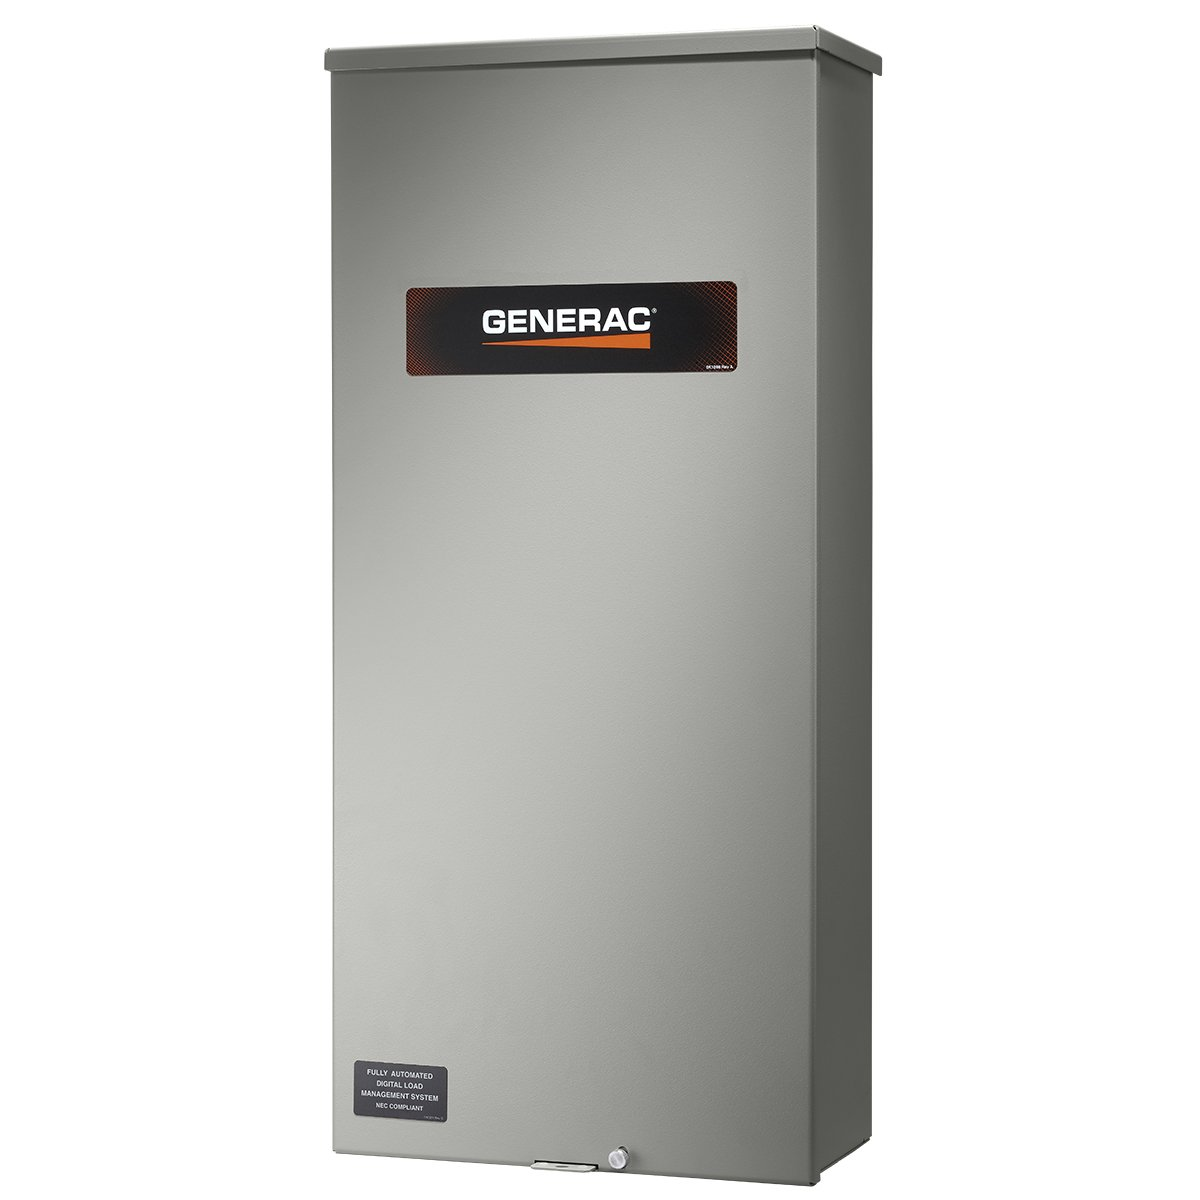 Generac RXSW100A3 100 Amp 120/240V Single Phase NEMA 3R Service Rated Automatic Transfer Switch for Standby Generators by Generac